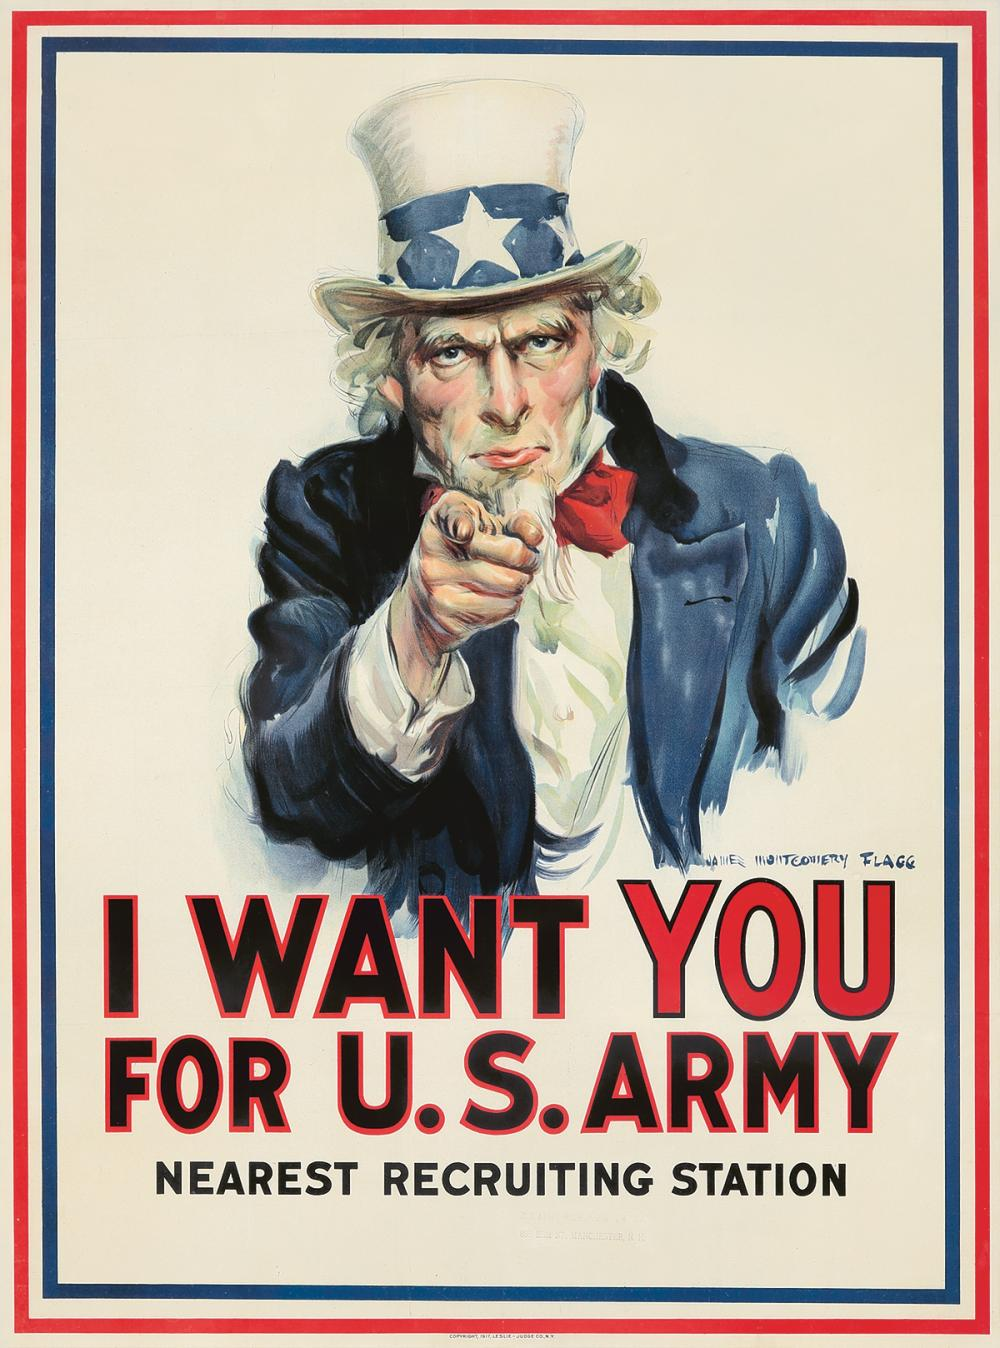 I Want You for U.S. Army. 1917.